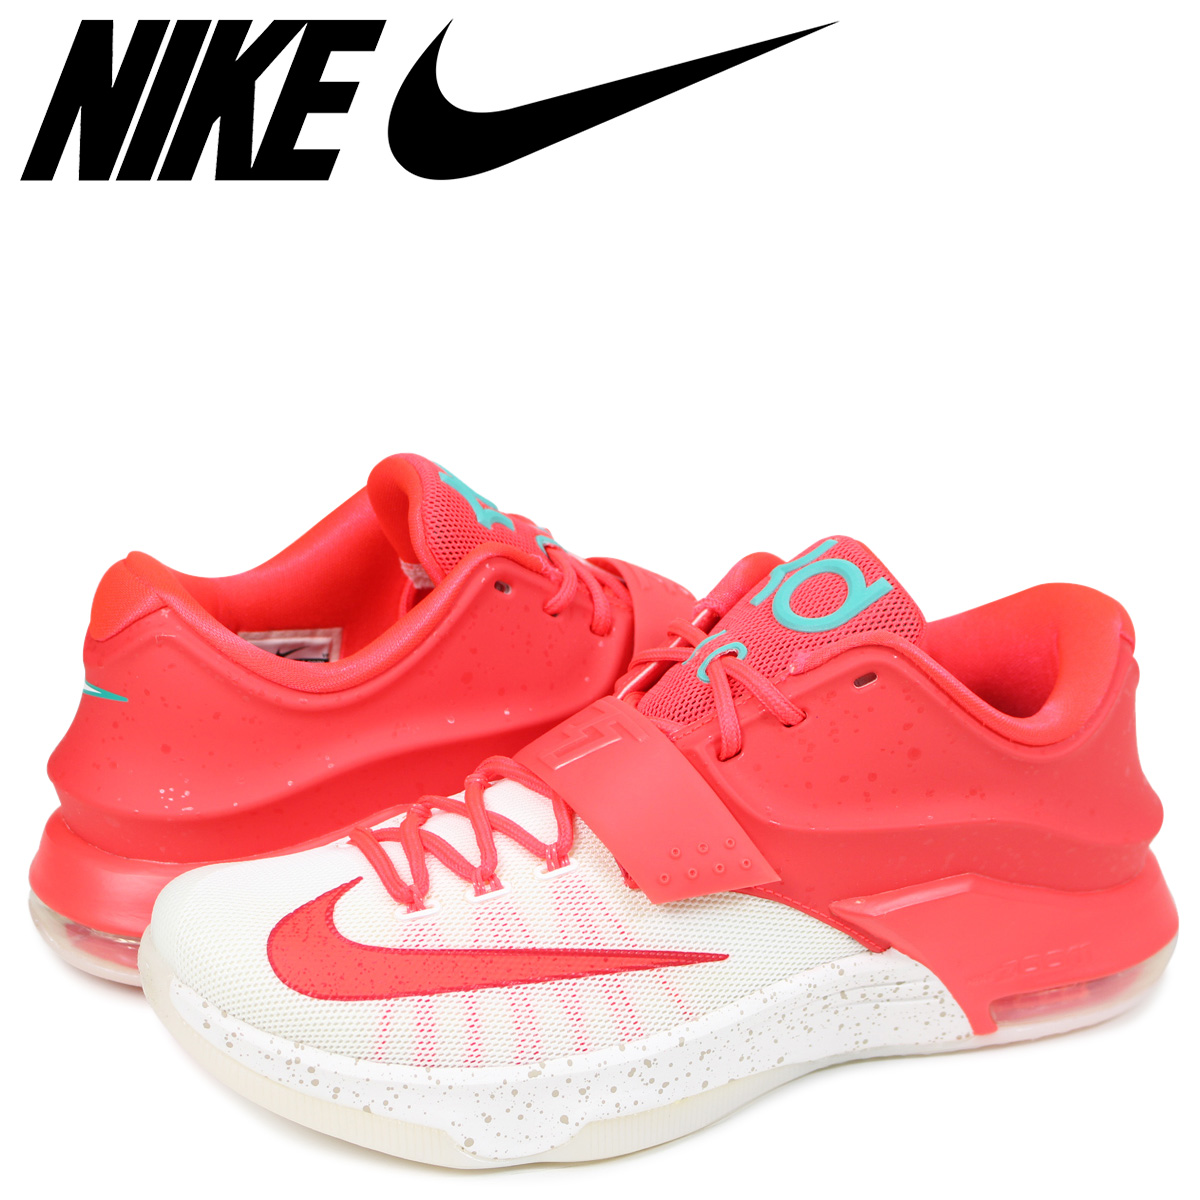 ... buy nike xmas nike kd 7 sneakers men 707560 613 kevin durant red 185  5c1a8 de401 2dc109abe